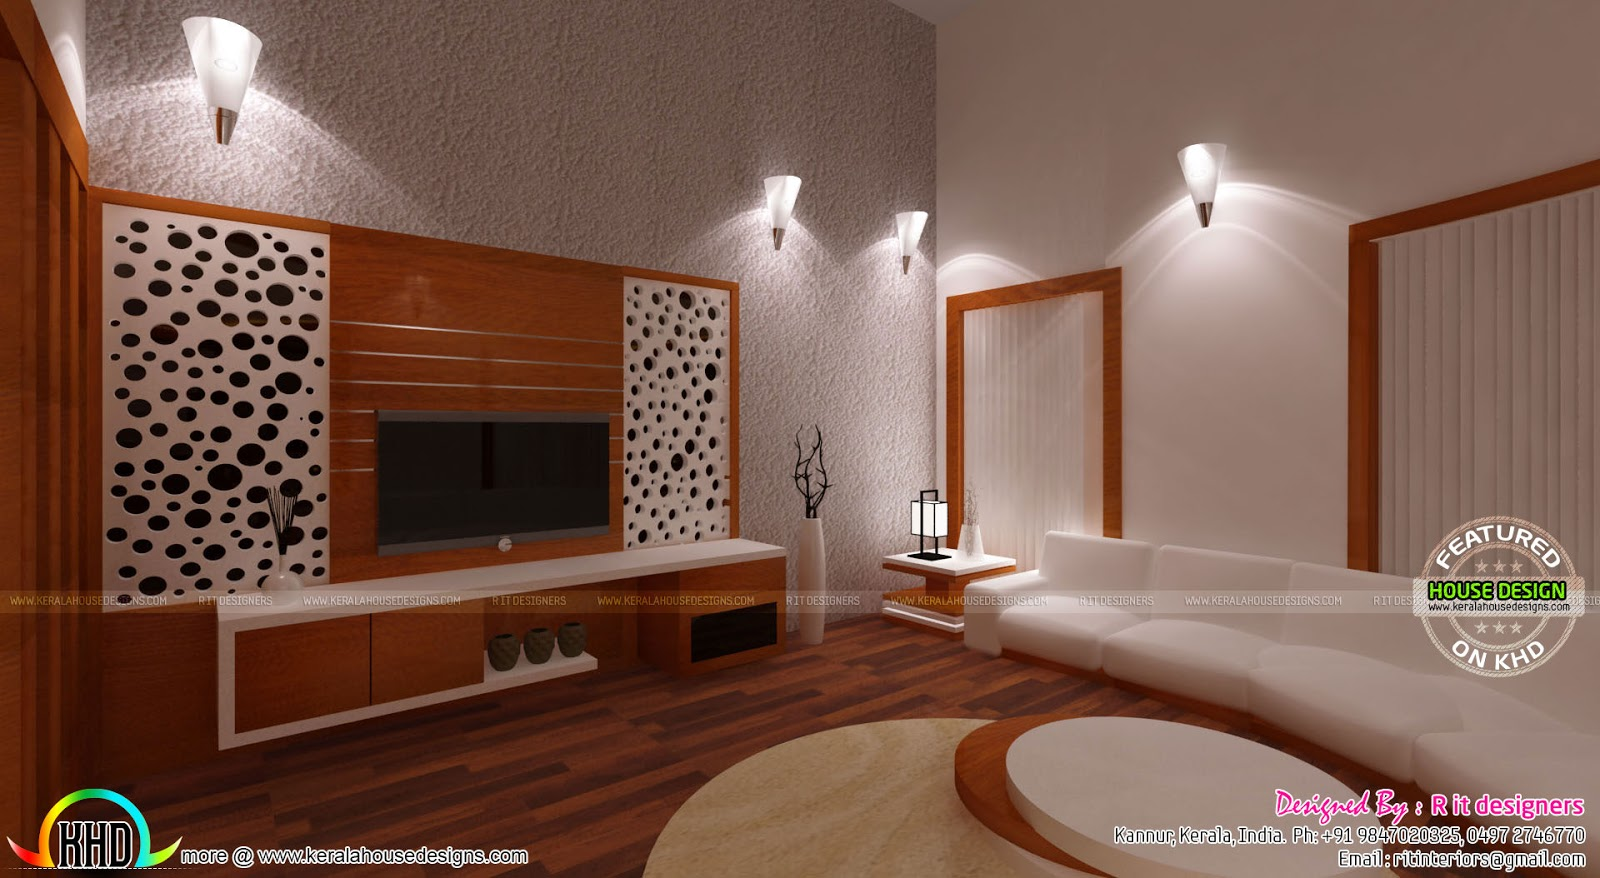 Wooden finish interior designs kerala home design and for Living room interior designs kerala